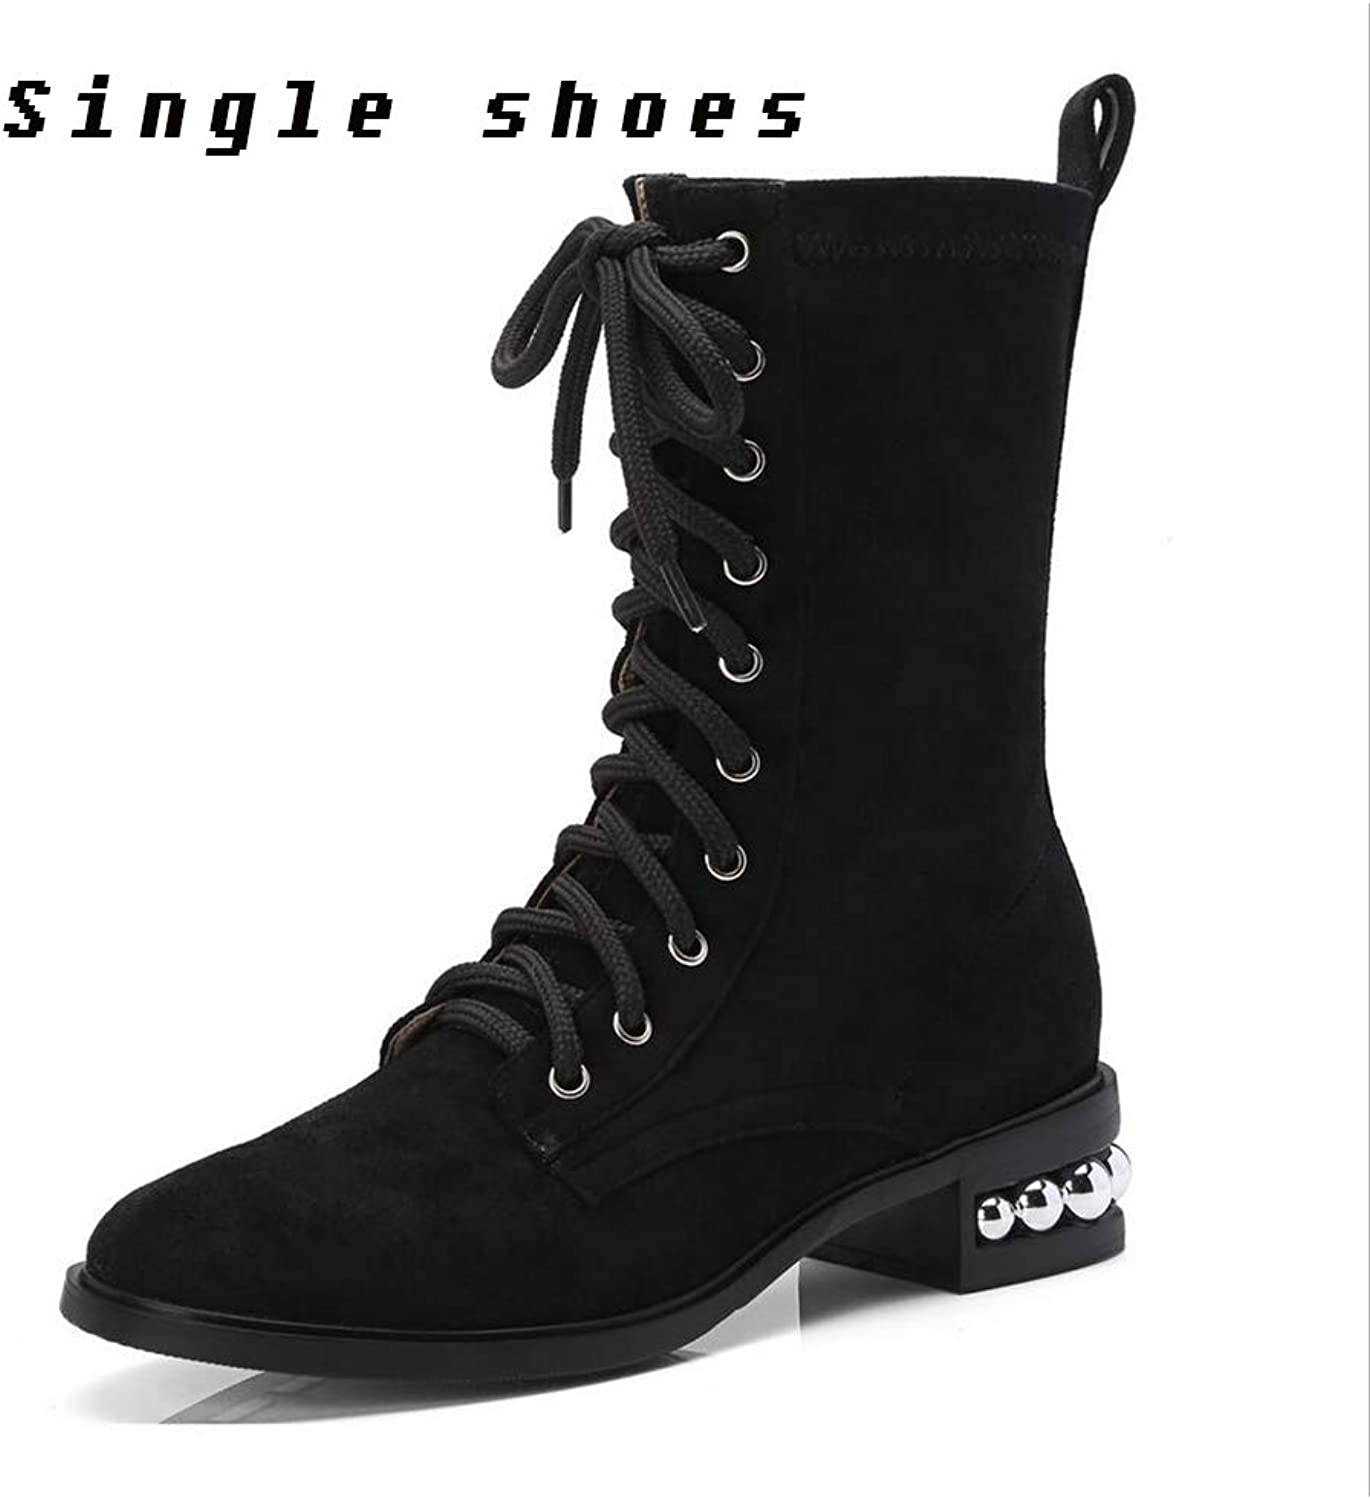 Women's shoes Leather Winter Snow Boots Boots Low Heel Mid-Calf Boots ,Comfort Ankle Boots,High Heel ,Frosted Material ,Rough High Heels,Fashion Boots, Lace-up Boots